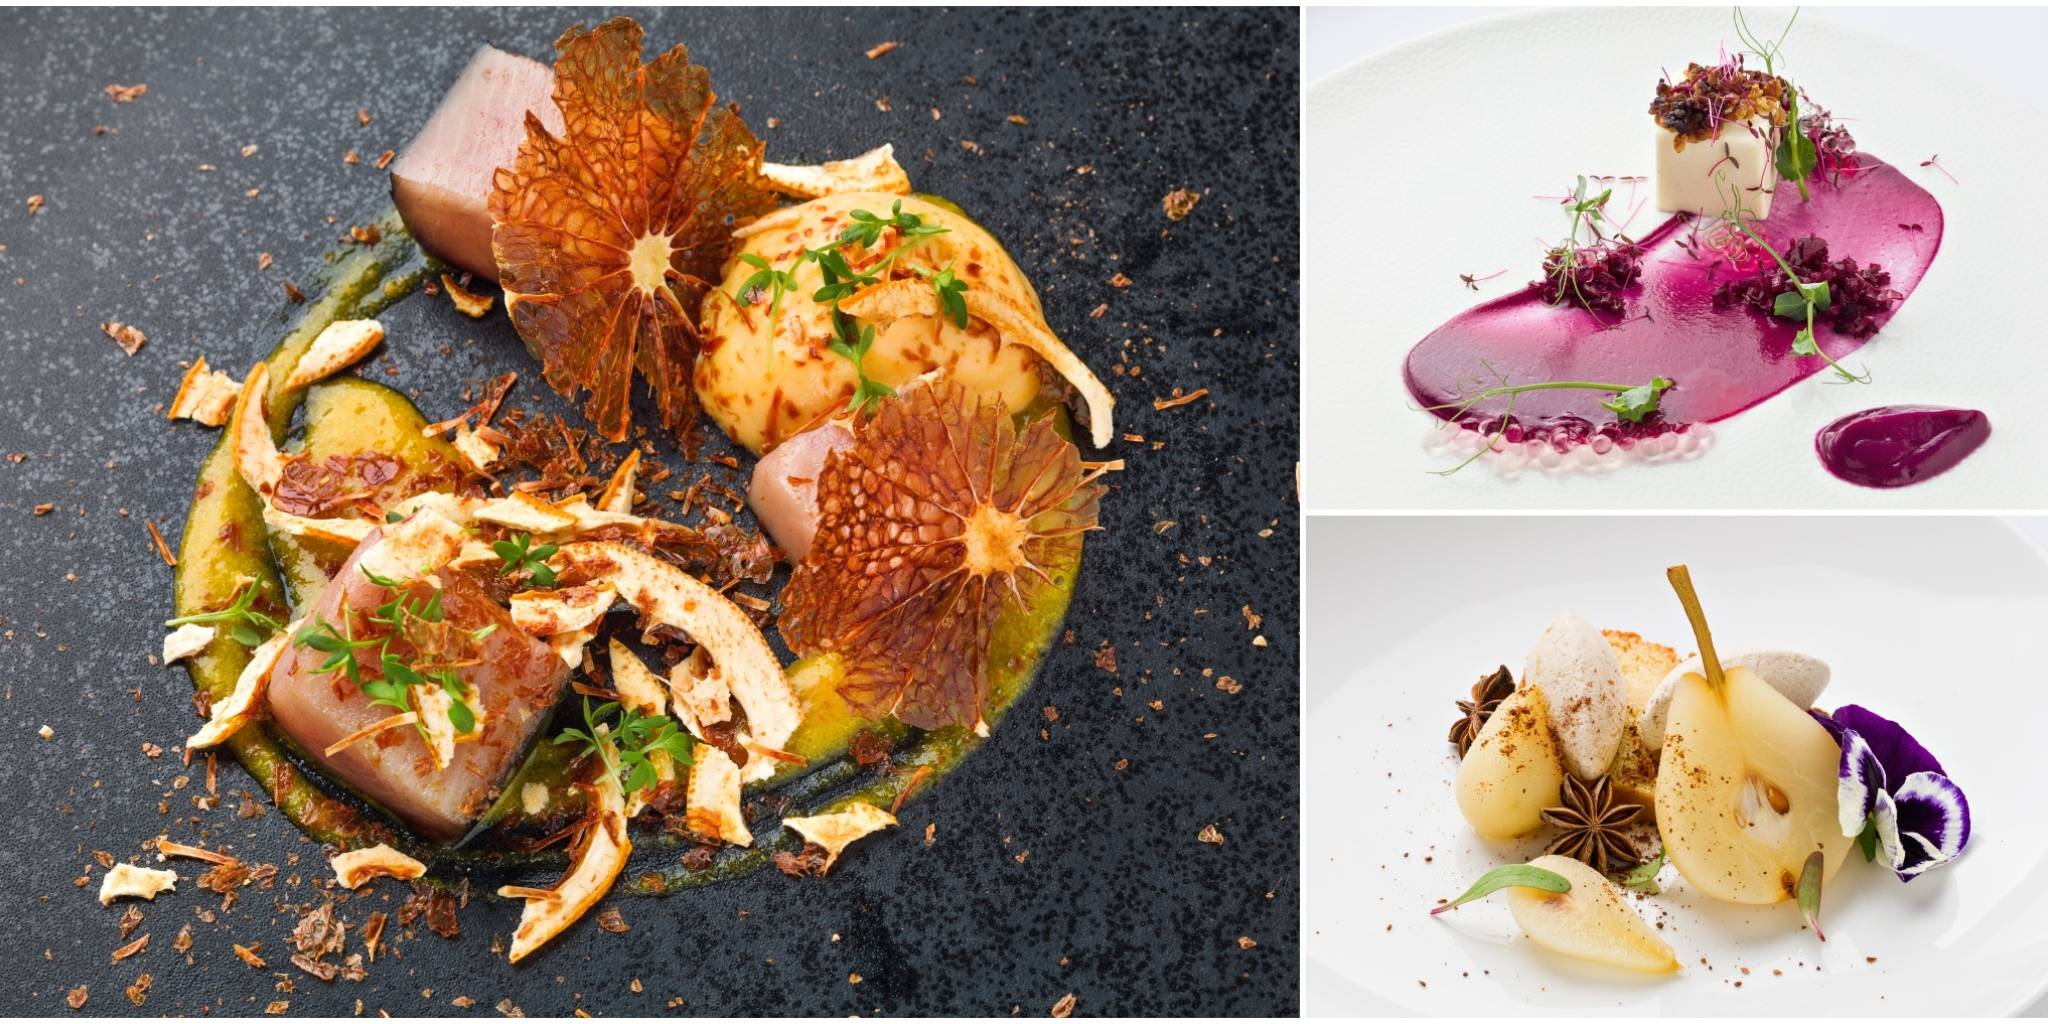 Explosion of fantastic flavours for the true gourmands